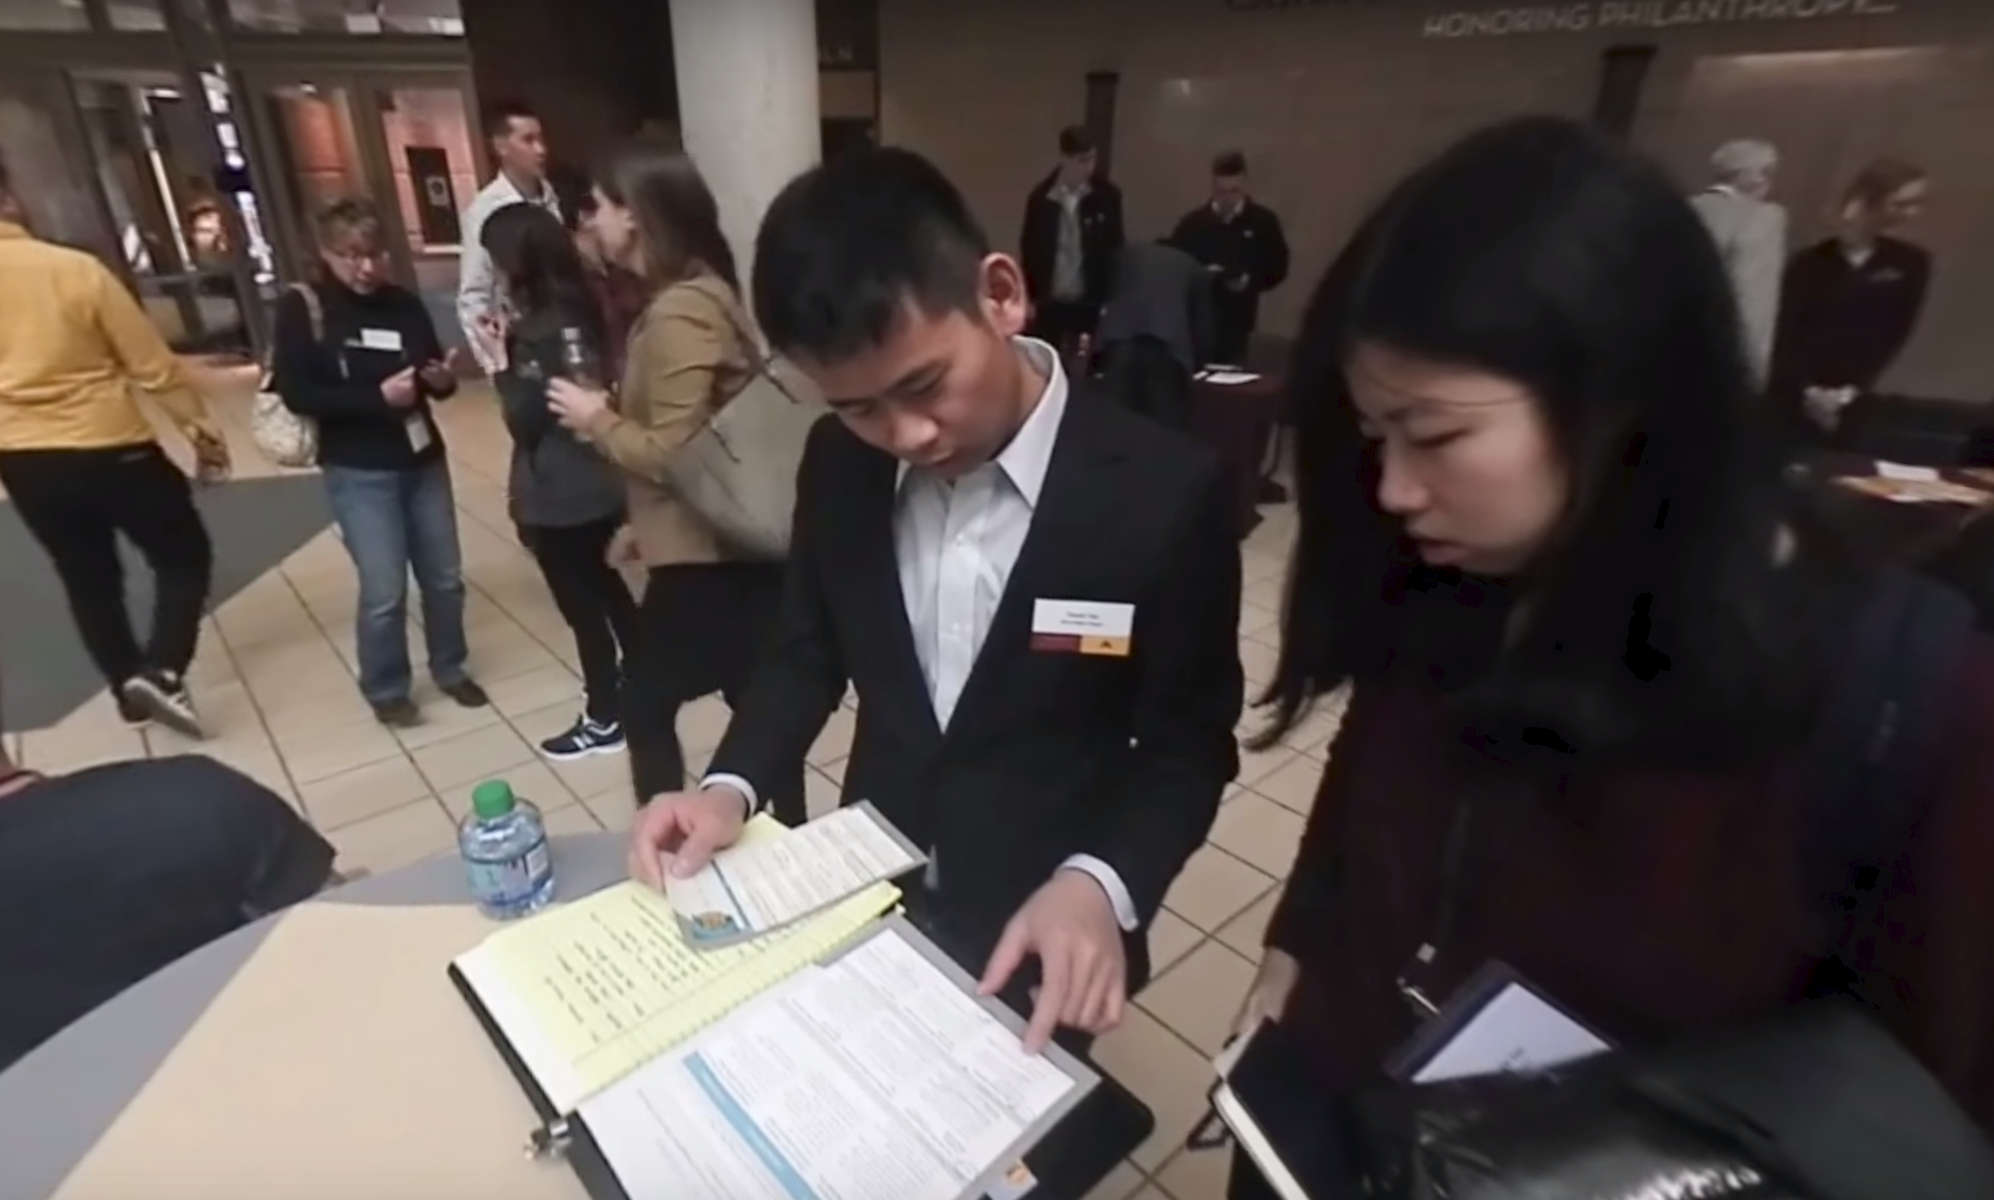 A 360-degree video looking back on the speakers, guests, and conversations of Tech Cities 2017 at the University of Minnesota's Carlson School of Management. The annual event brings the best talent together for unique opportunities and discussion about business and technology in Minnesota.